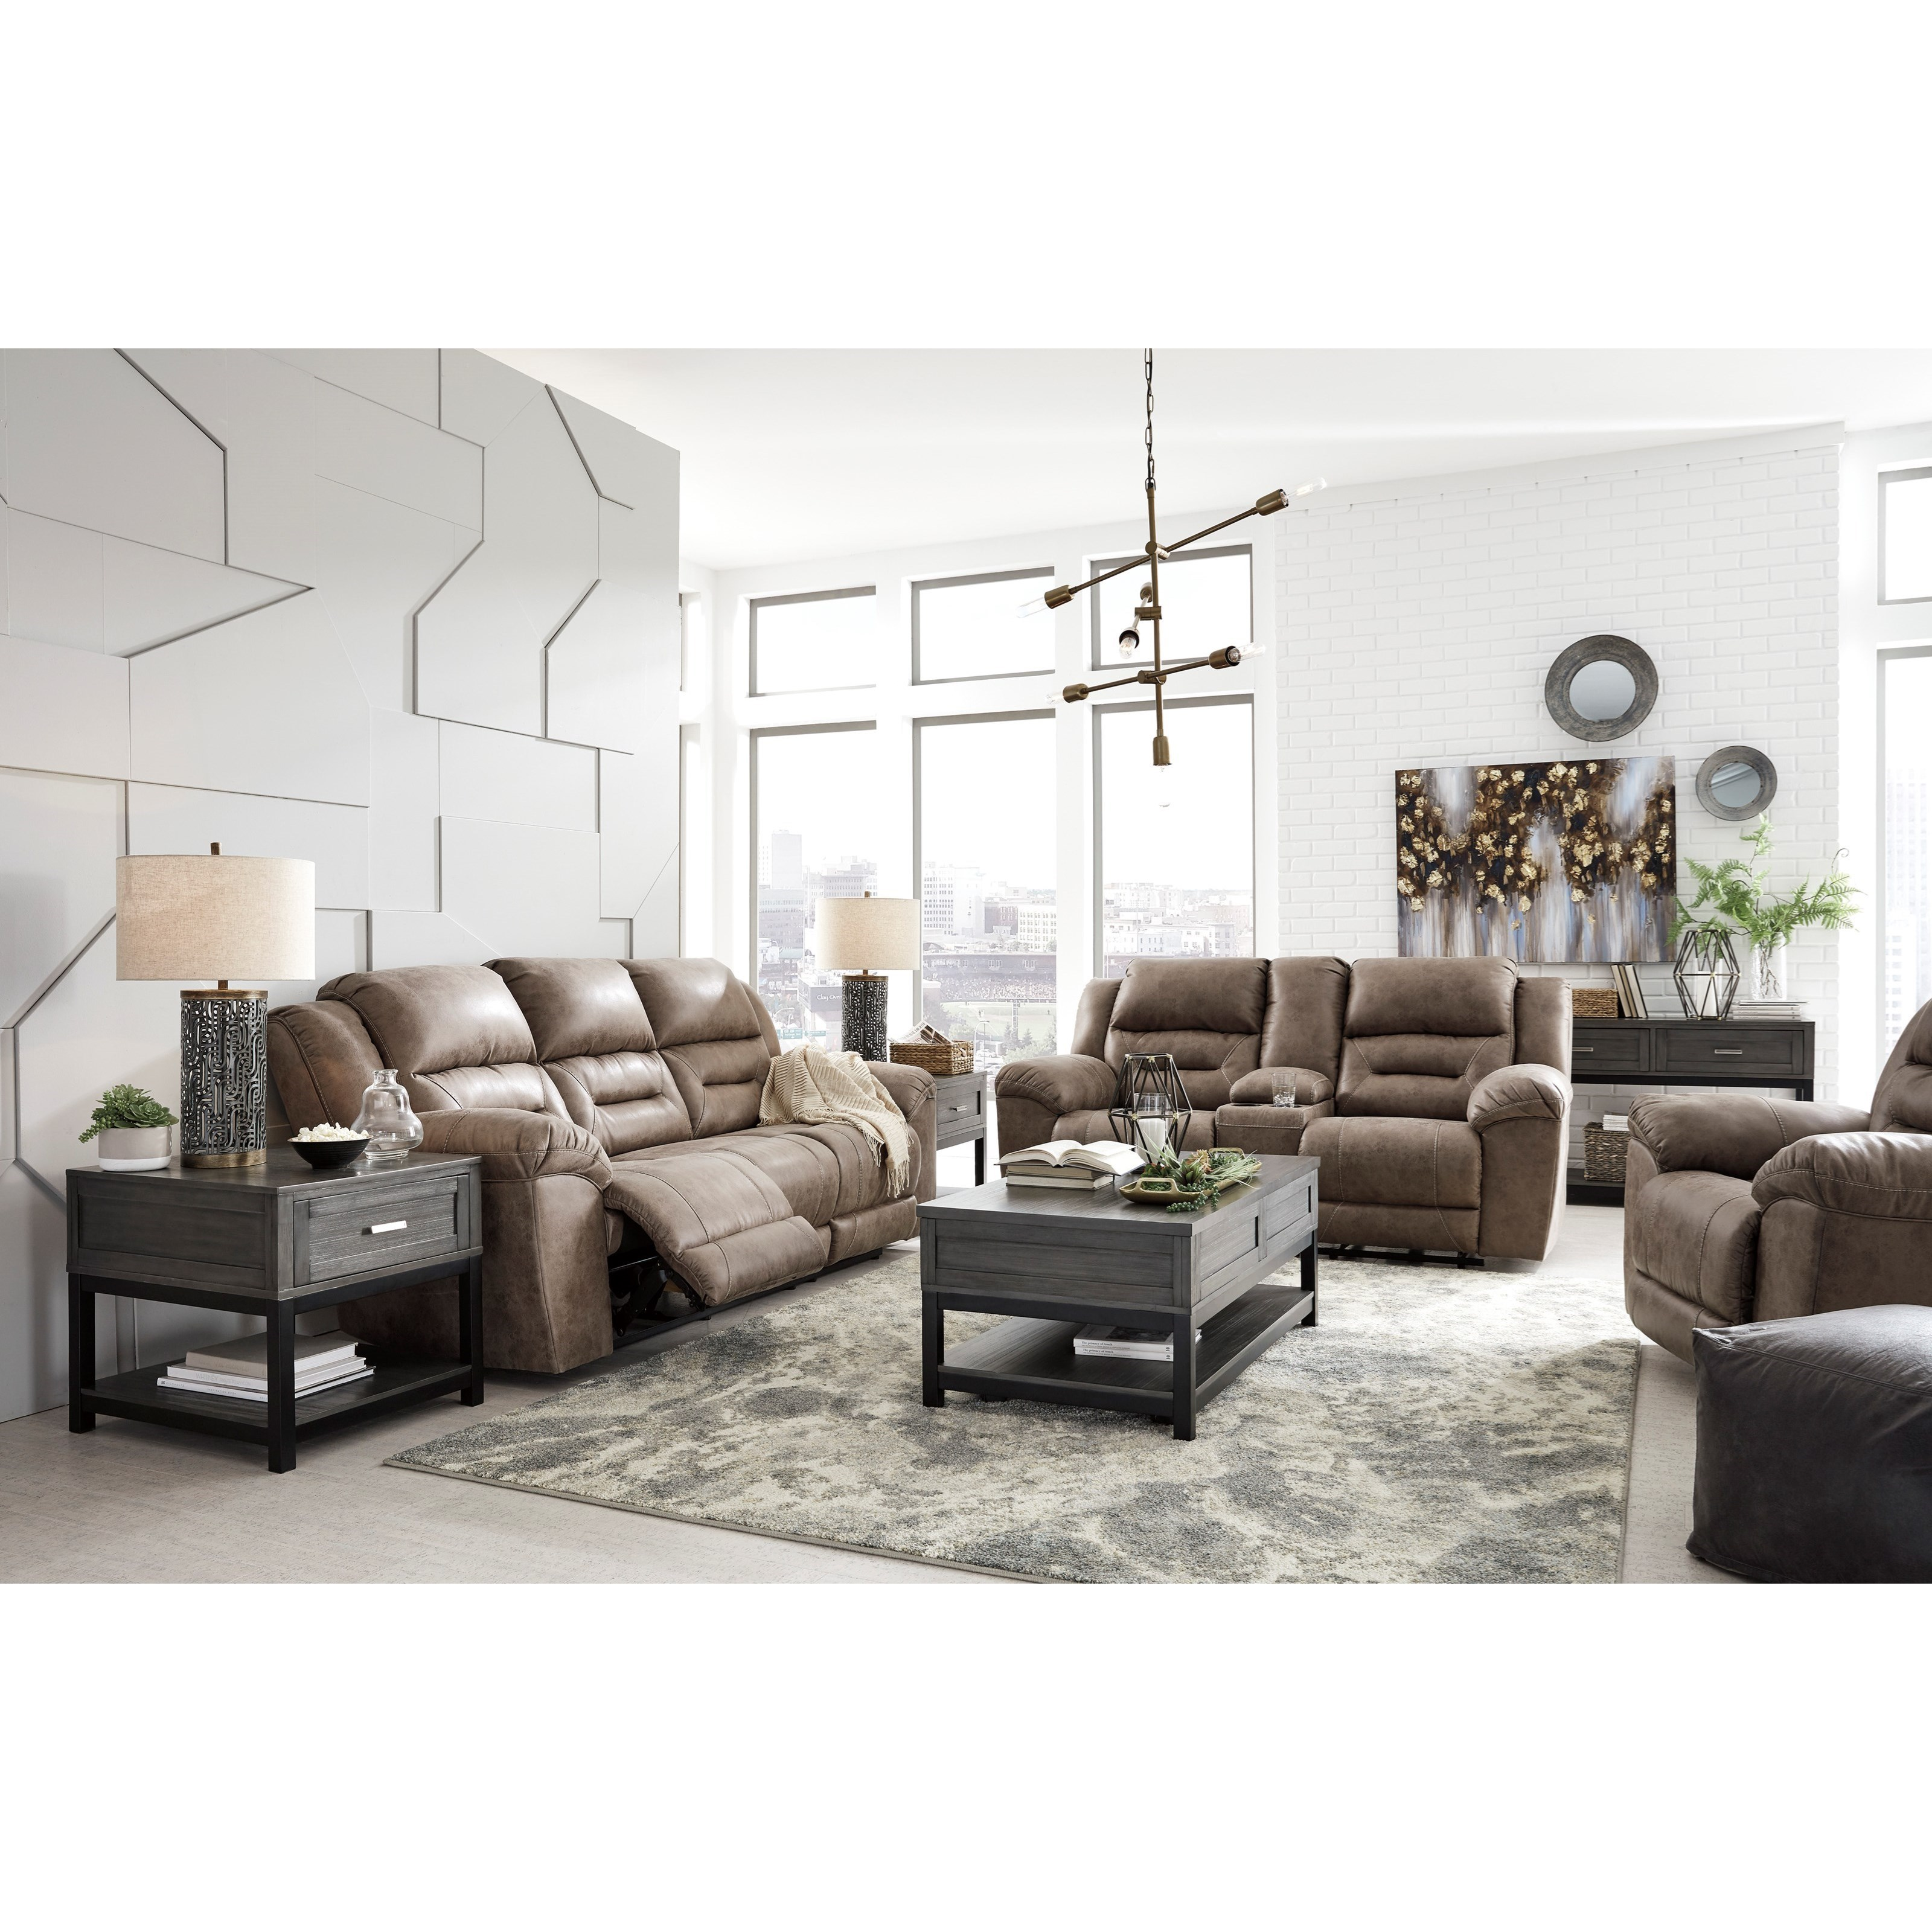 Stoneland Reclining Living Room Group by Signature Design by Ashley at Westrich Furniture & Appliances